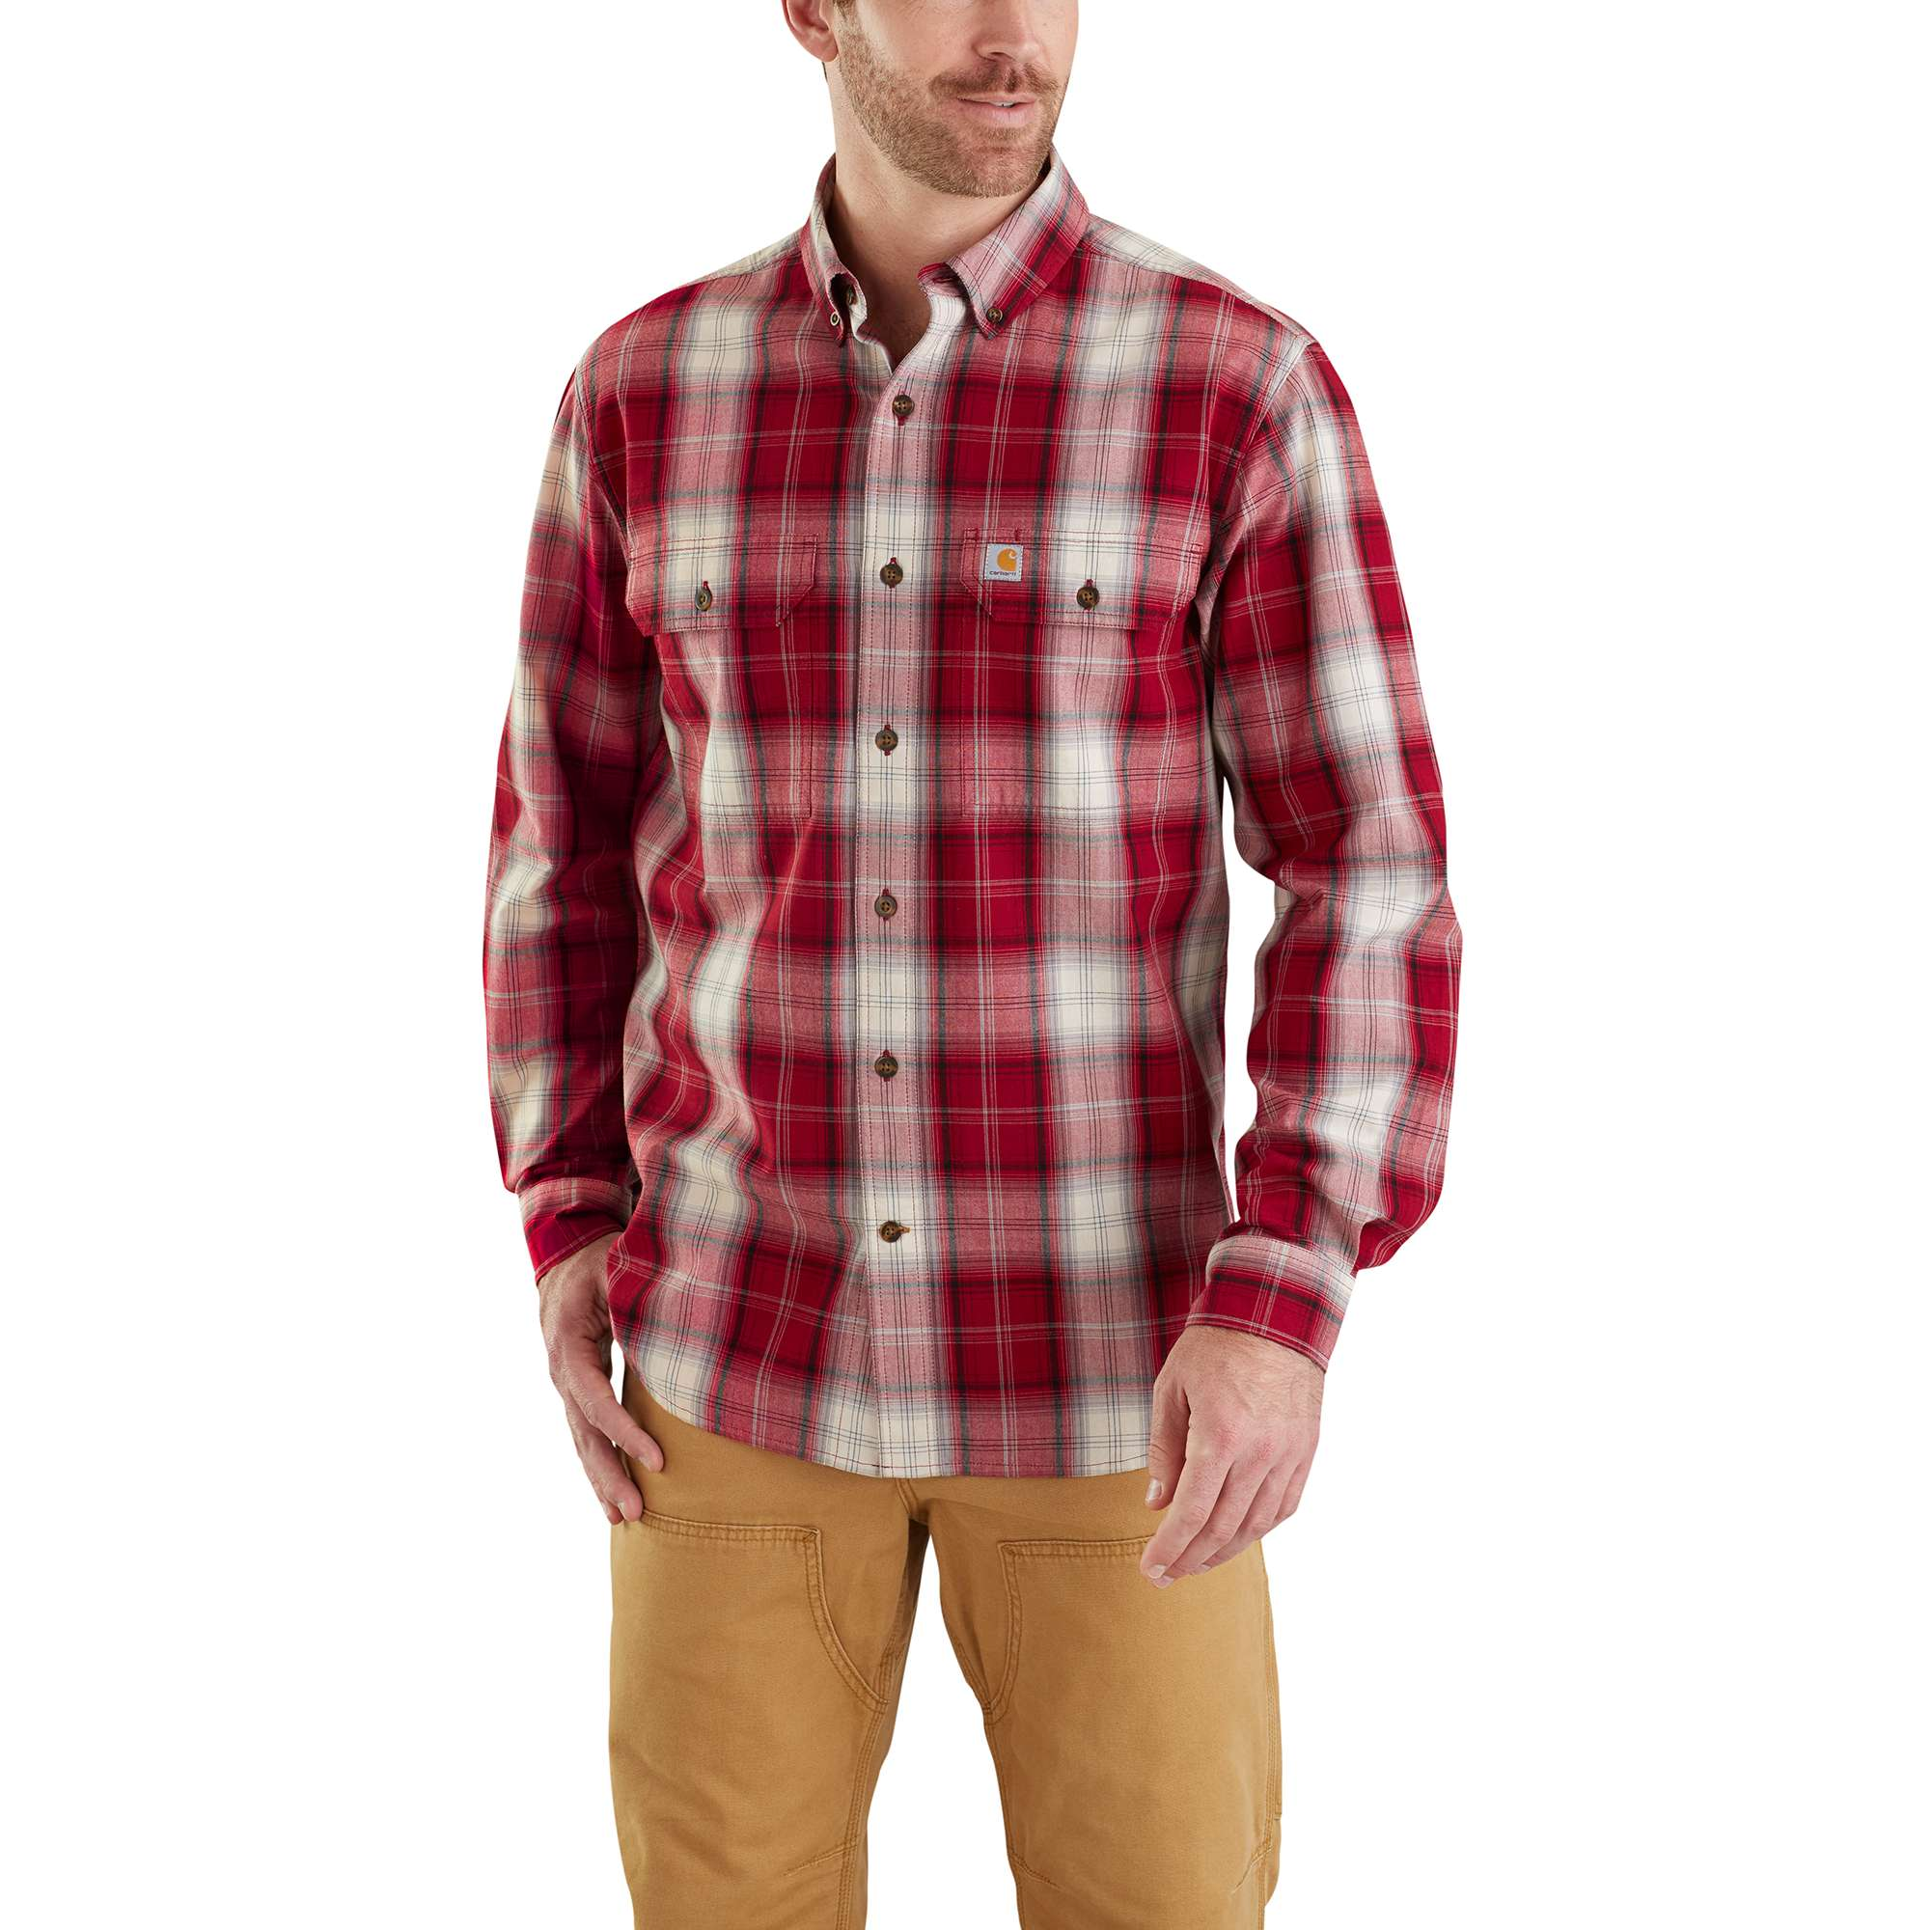 Men's Fort Plaid Long Sleeve Shirt, Crimson, swatch